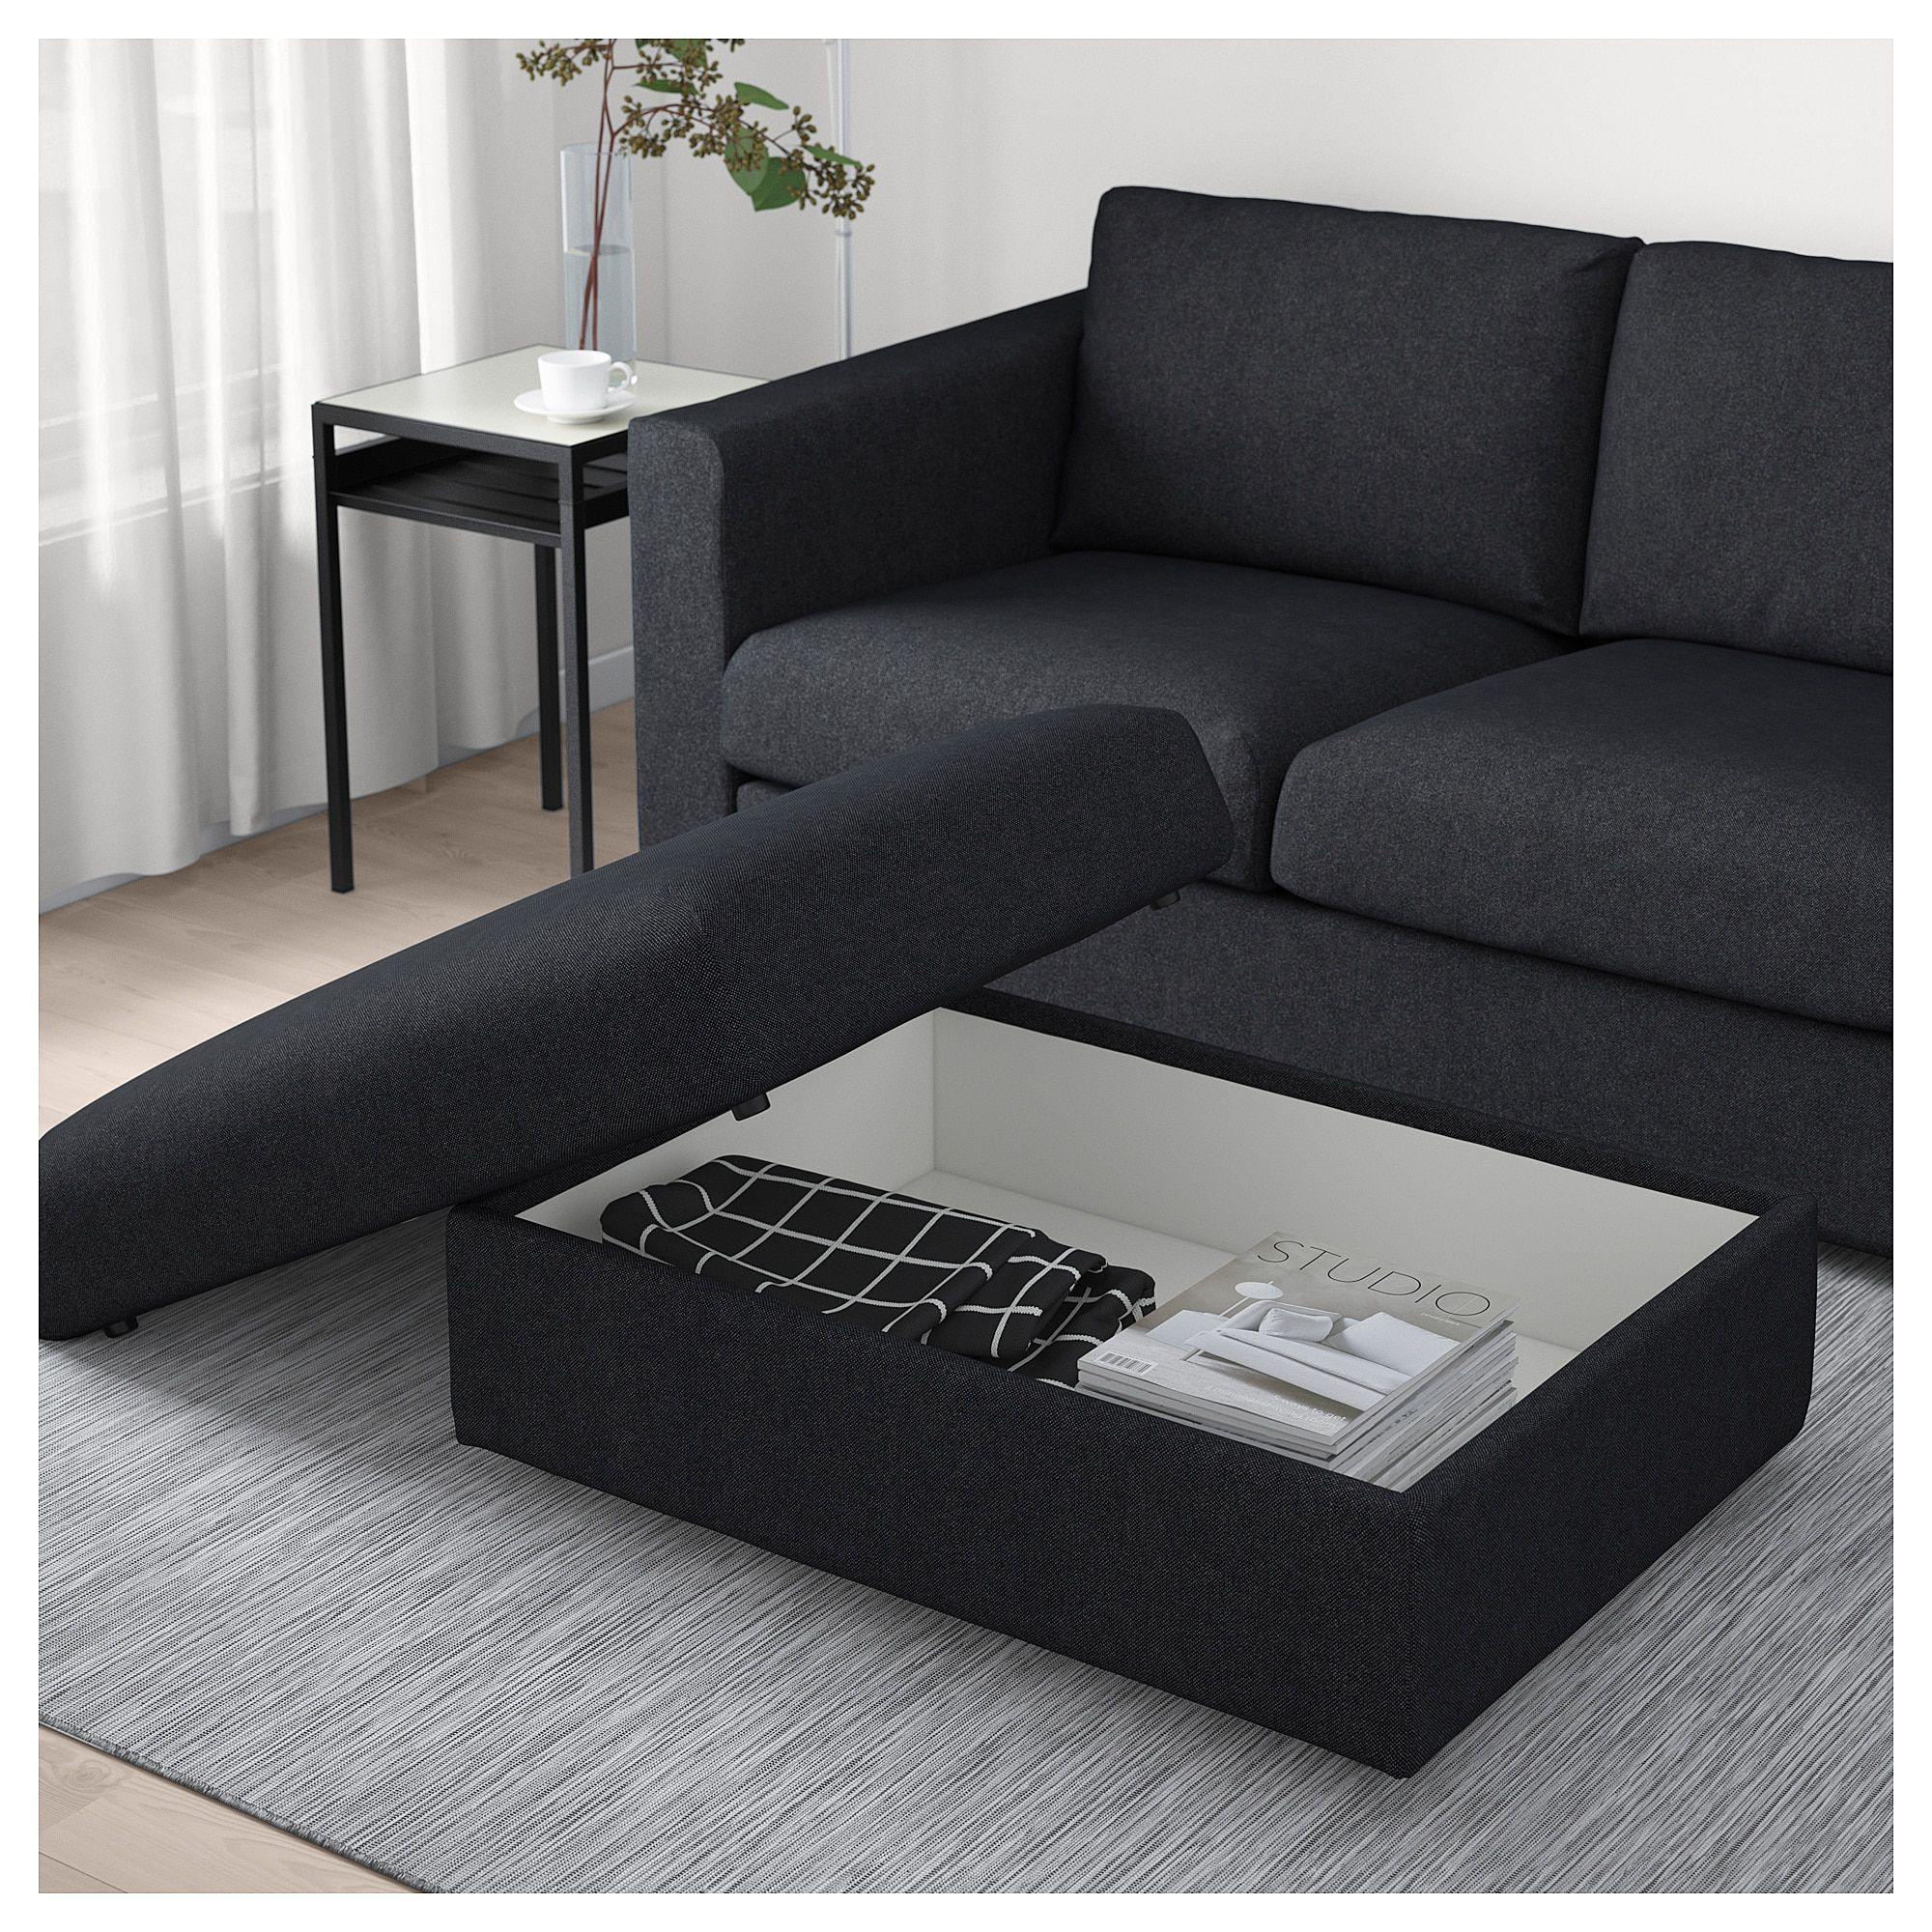 Enjoyable Ikea Vimle Tallmyra Black Gray Ottoman With Storage In 2019 Caraccident5 Cool Chair Designs And Ideas Caraccident5Info